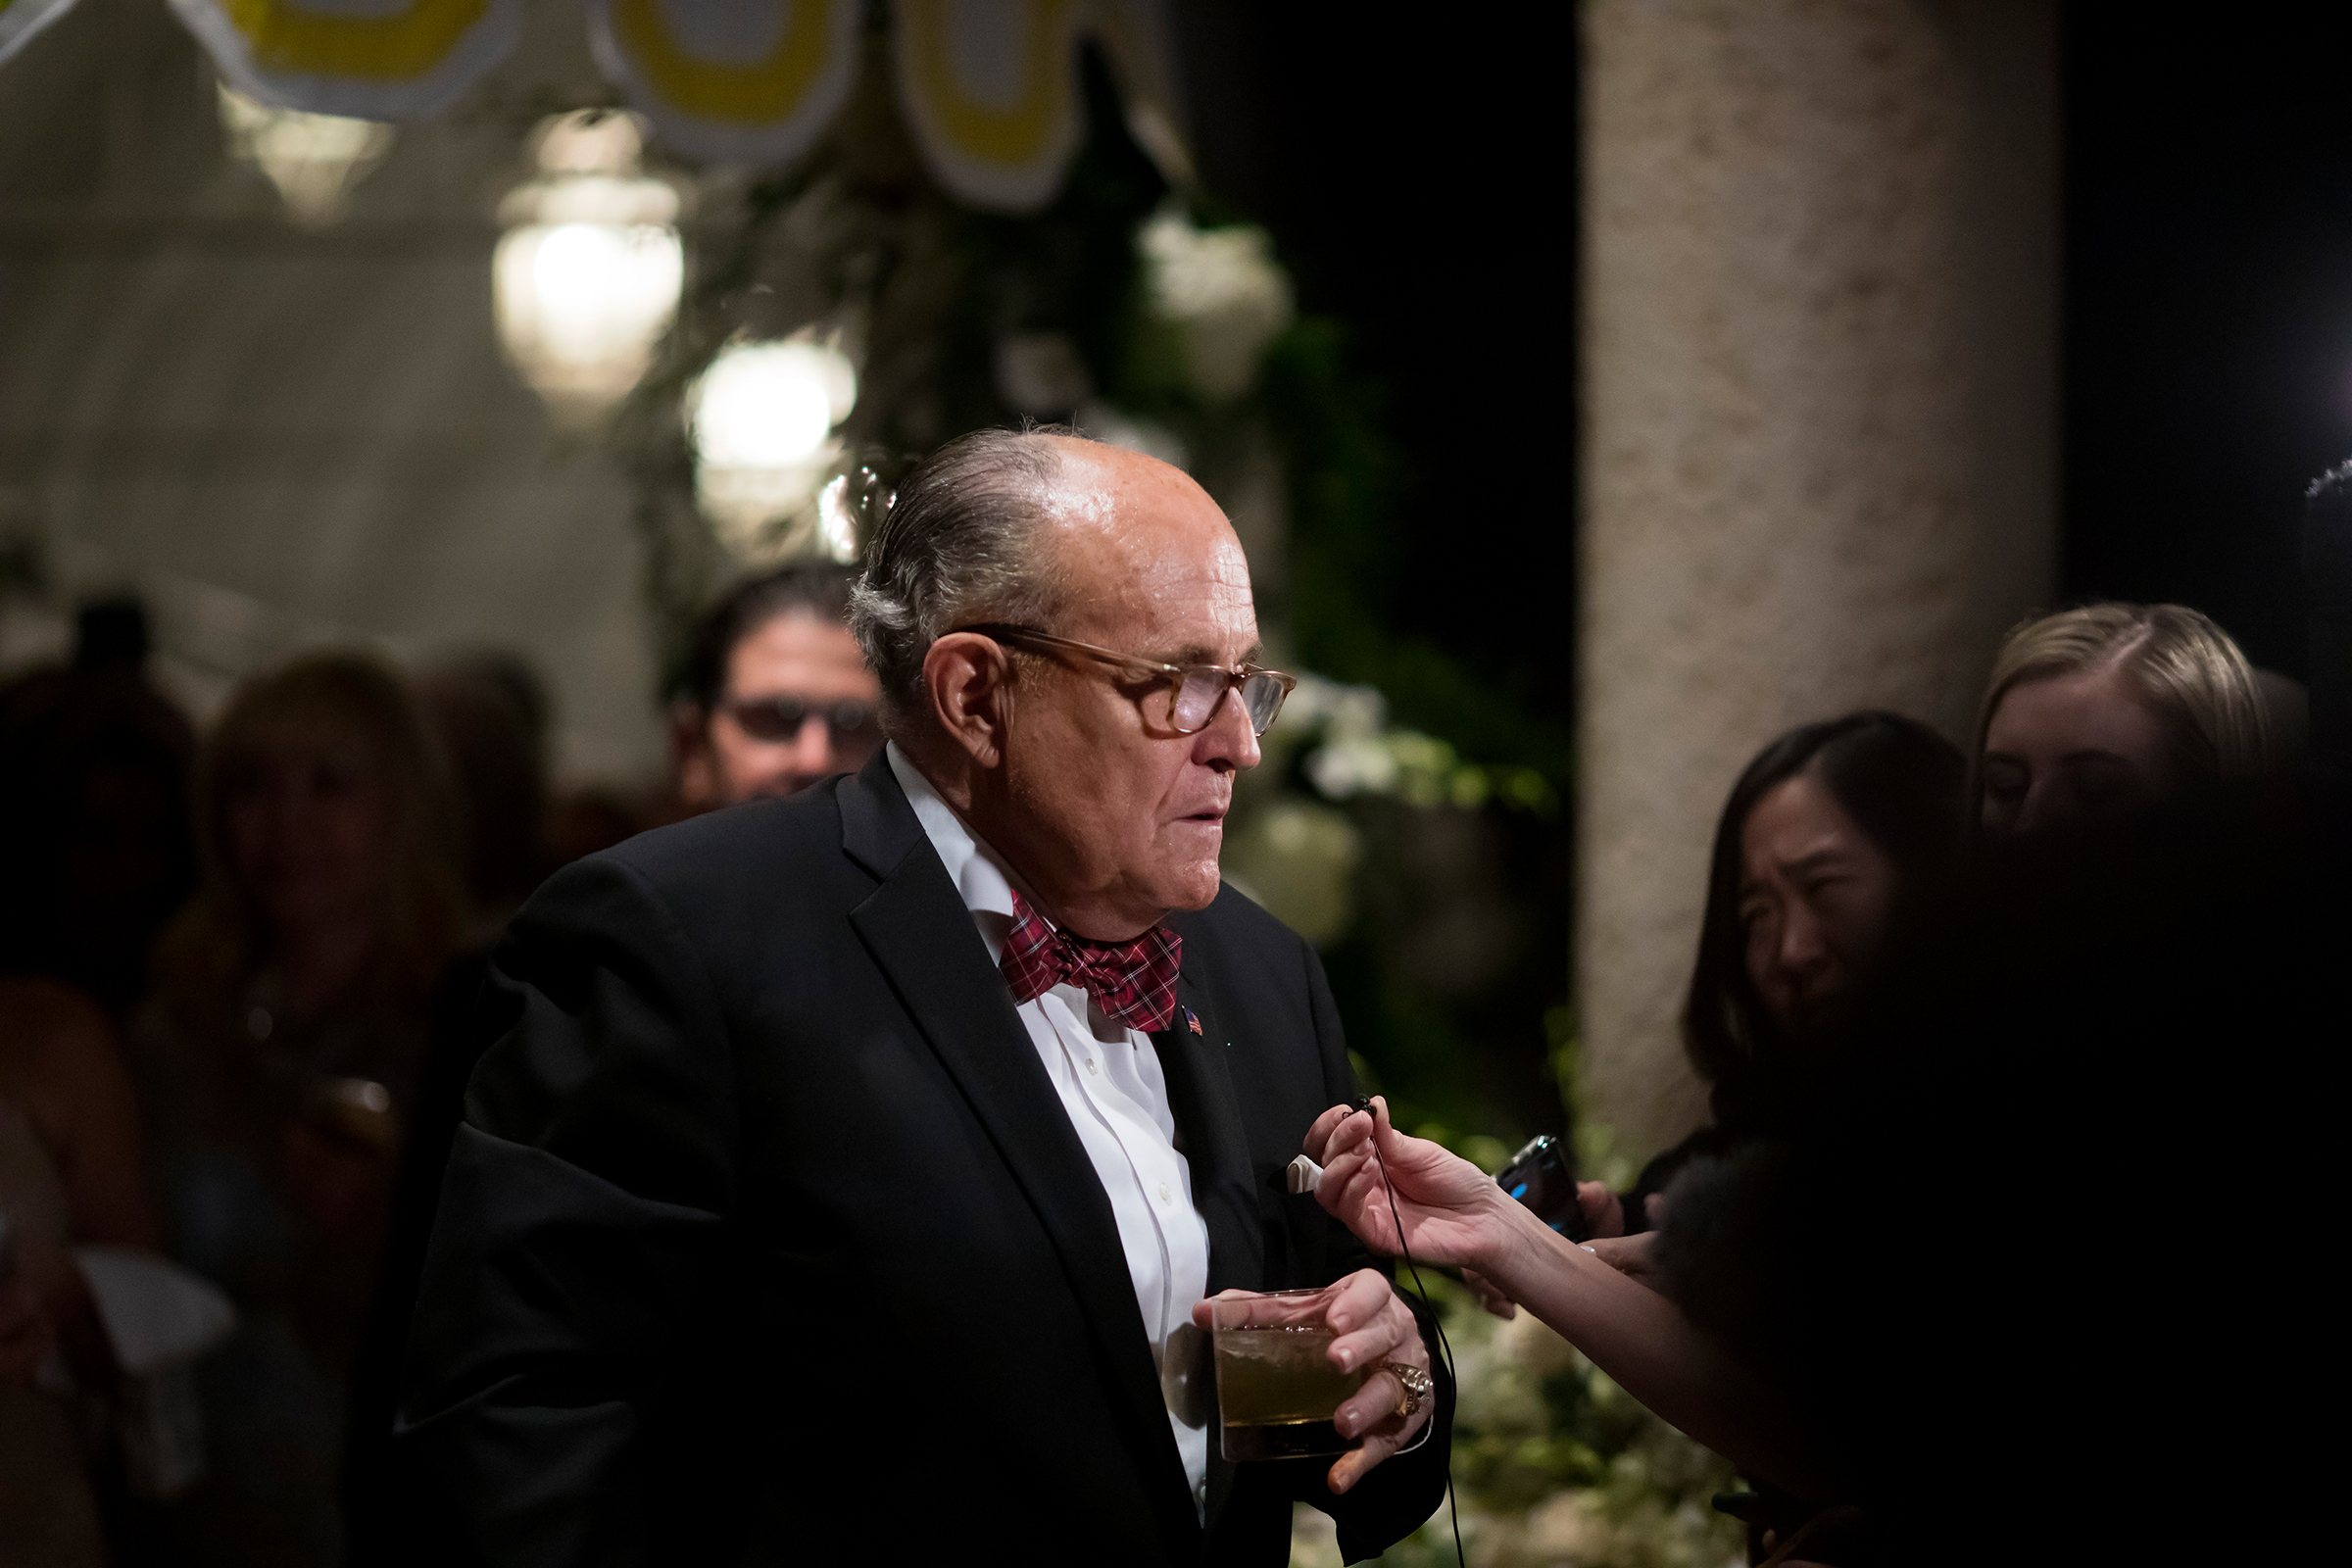 Rudy Giuliani, President Donald Trump's personal lawyer, speaks to reporters at the Mar-a-Lago resort in Palm Beach, Fla., on Dec. 31, 2019.